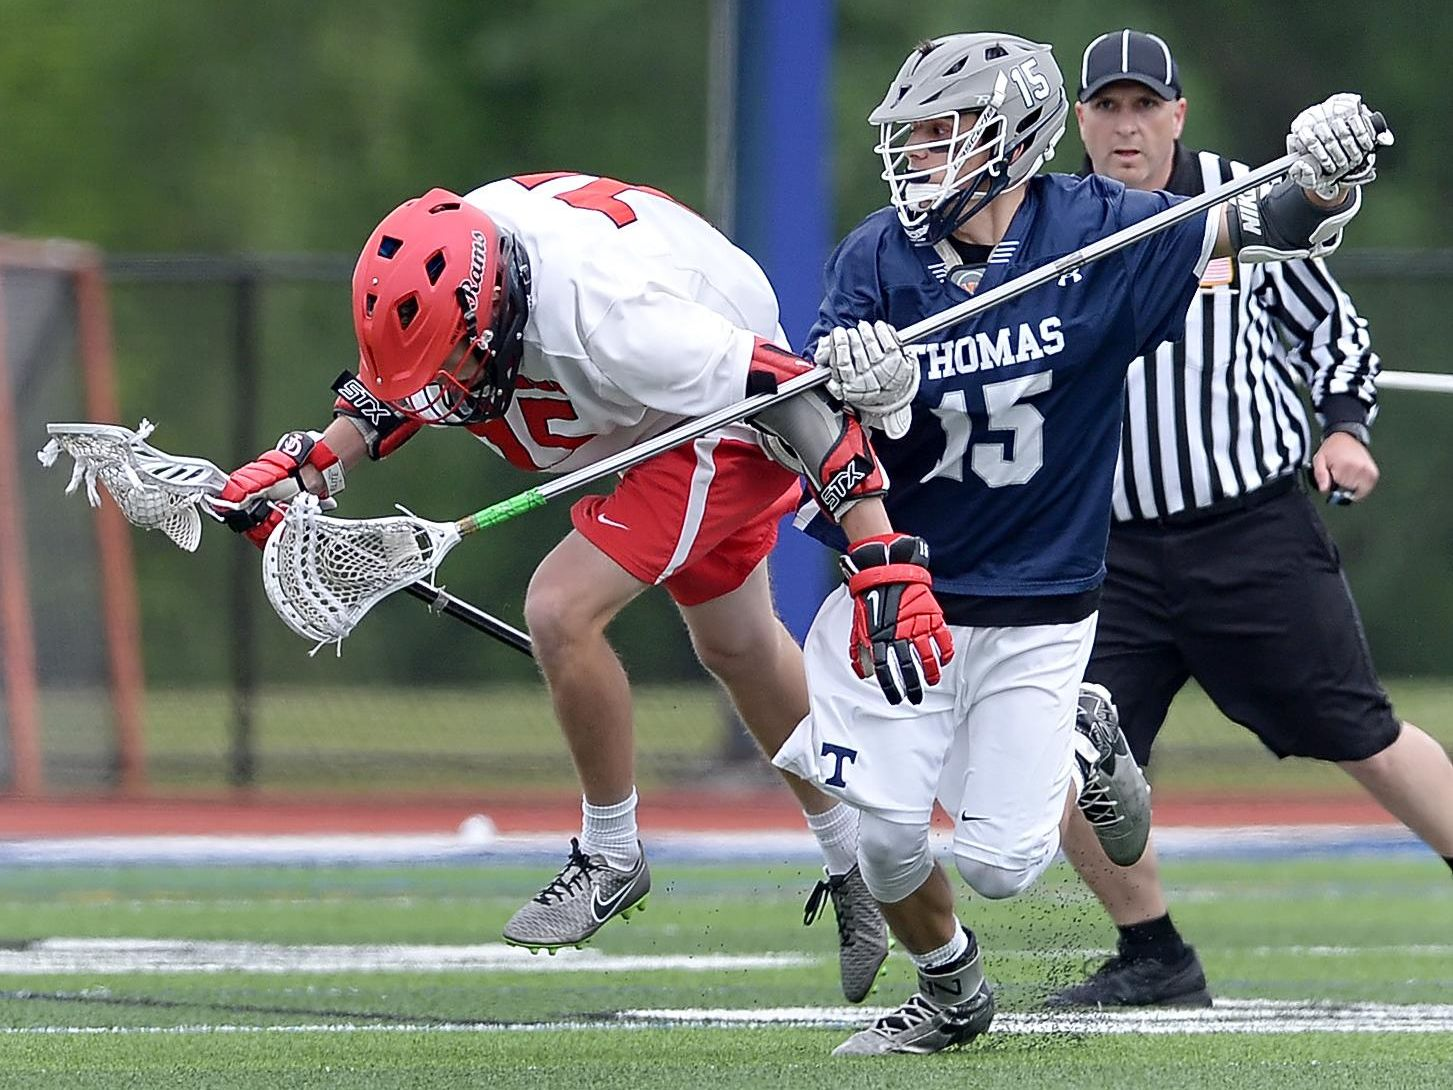 Webster Thomas' C.J. Battaglia, right, pressures Jamesville-Dewitt's Andrew Barclay during the NYSPHSAA Class B Western Semifinal played at Cicero-North Syracuse High School on Wednesday, June 8, 2016. Webster Thomas' season ended with a 13-9 loss to Jamesville-Dewitt-III.